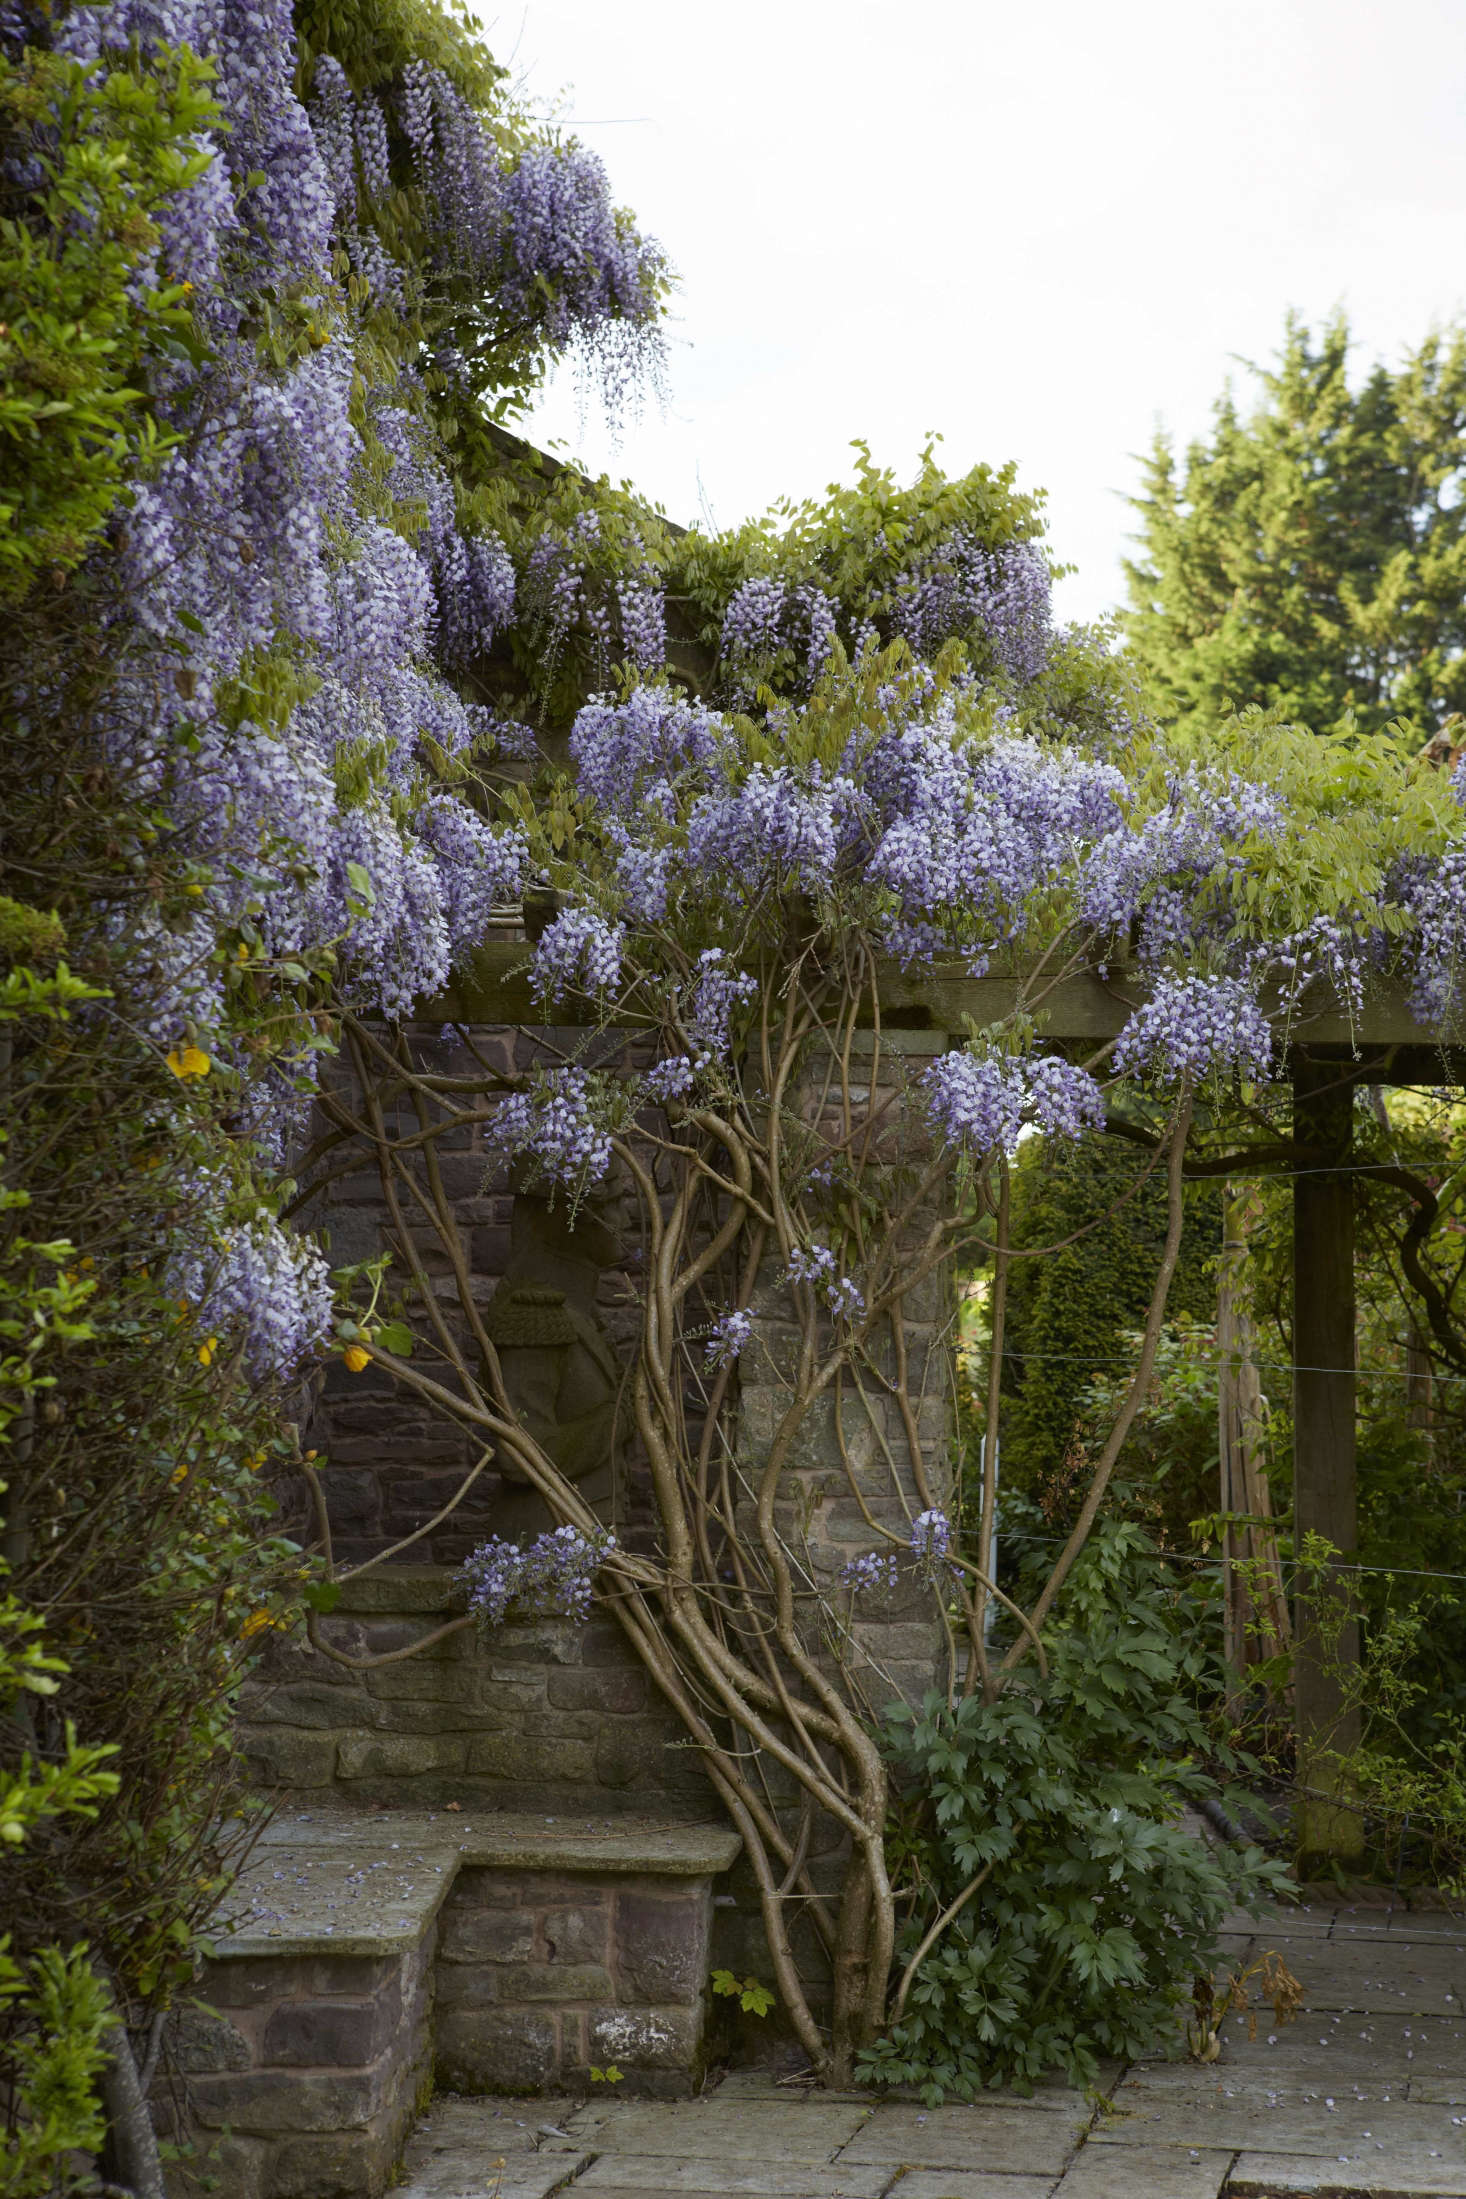 Plant wisteria in a protected, warm spot in full sunlight (try to get this right the first time, because it does not like to be transplanted).